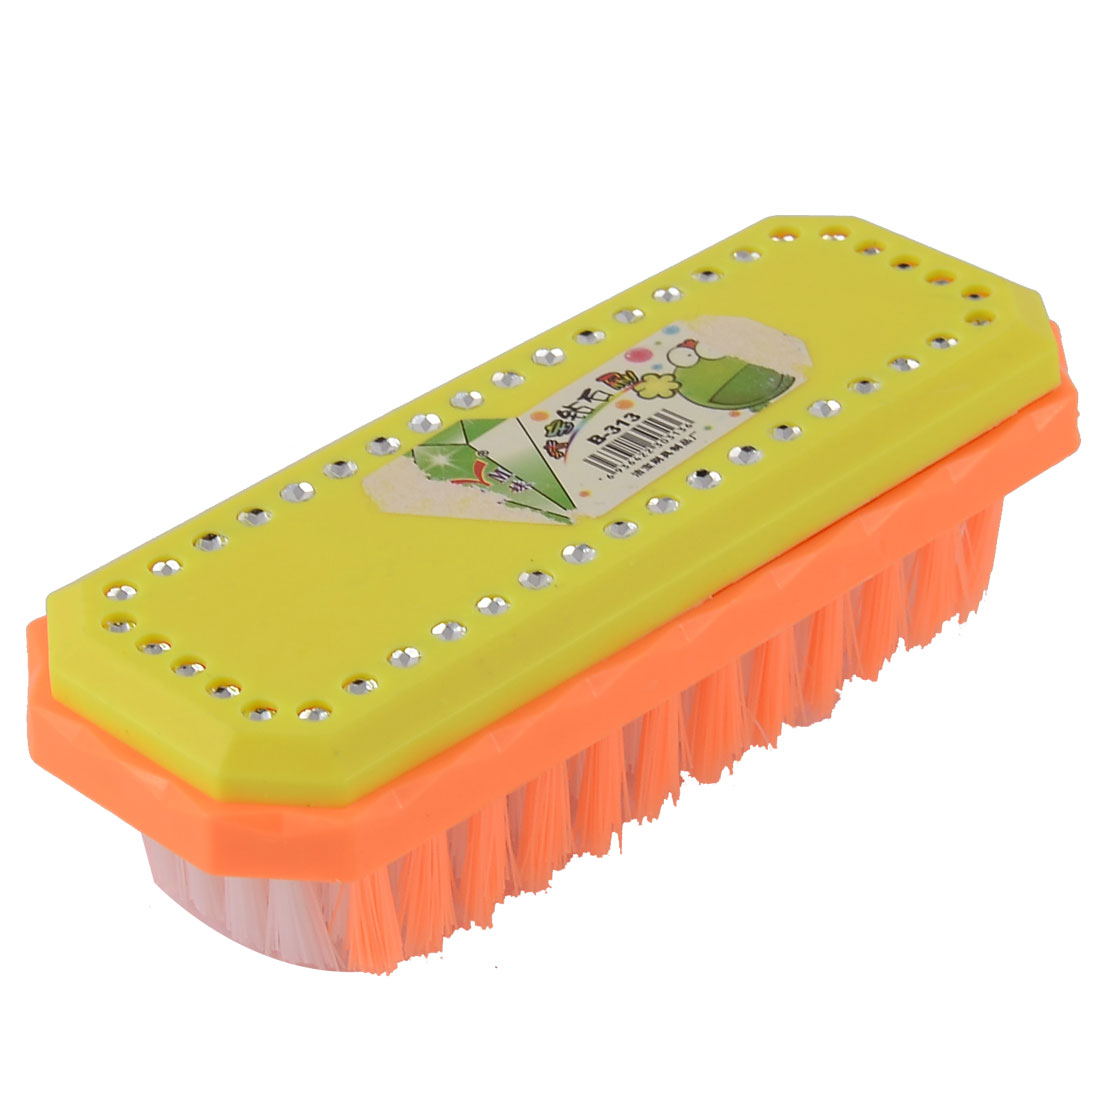 Household Plastic Clothes Shoes Cleaning Scrubbing Brush Orange Yellow